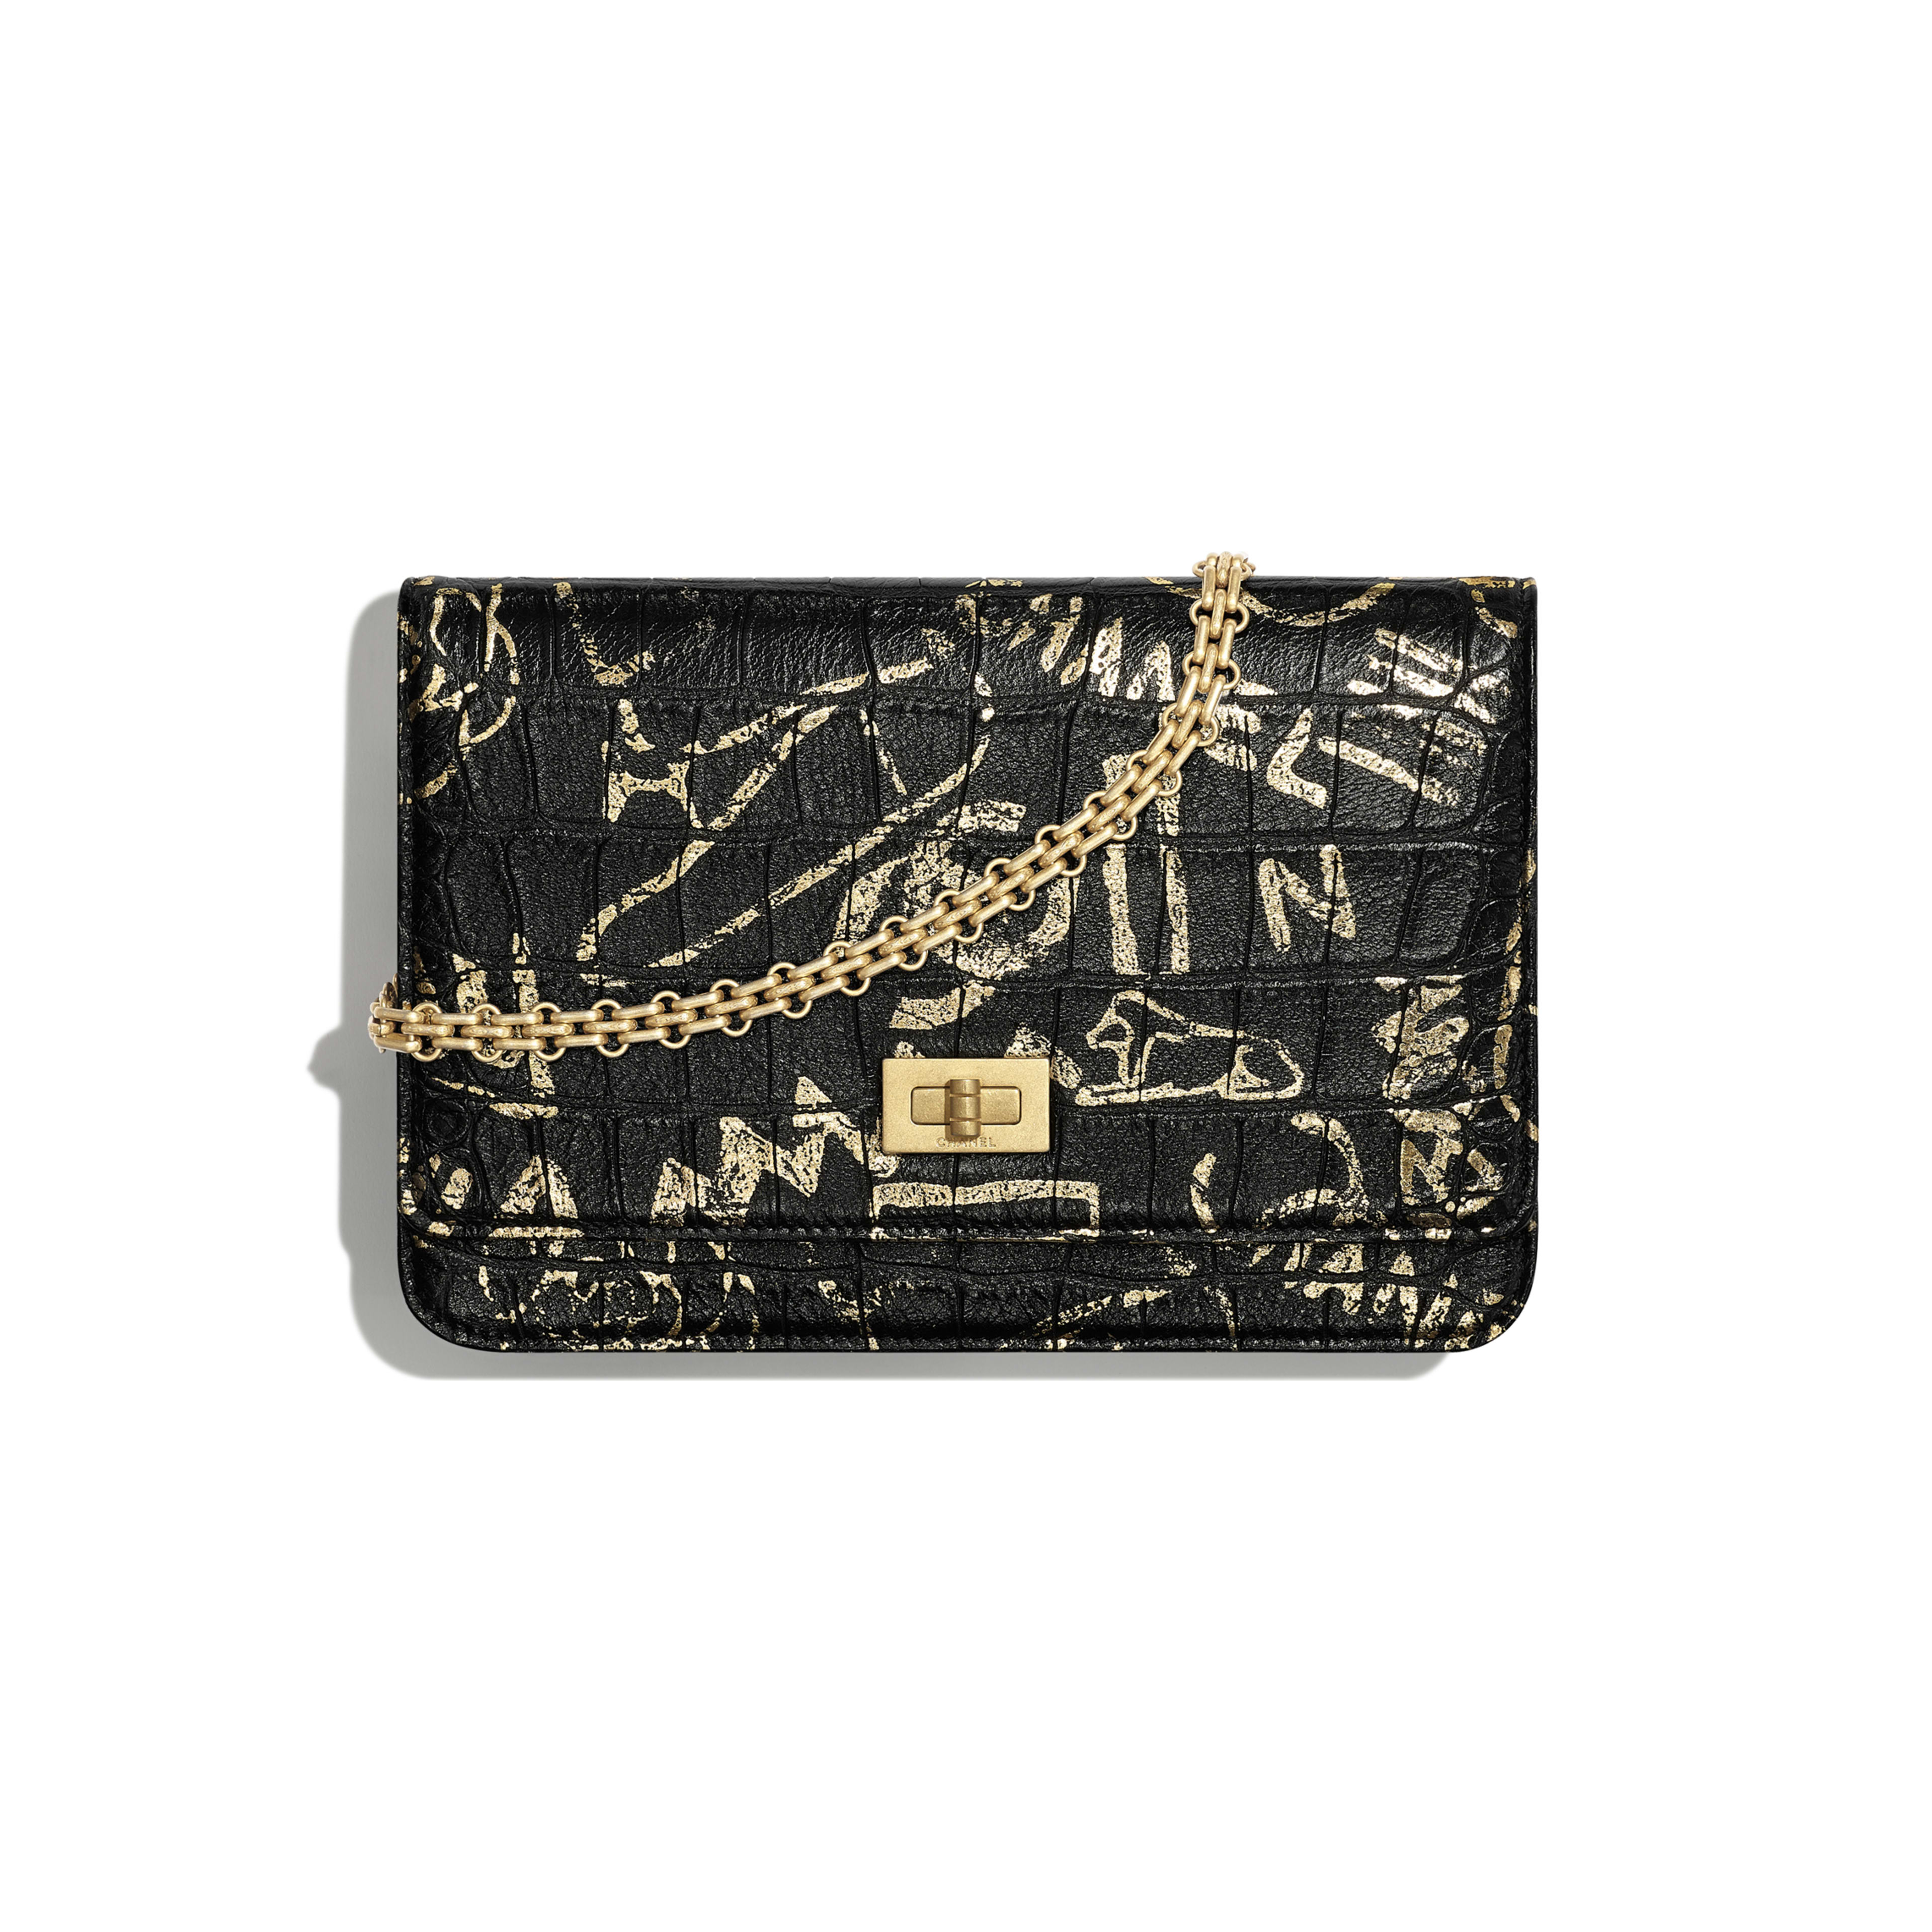 2.55 Wallet on Chain - Black & Gold - Crocodile Embossed Printed Leather & Gold-Tone Metal - Default view - see full sized version